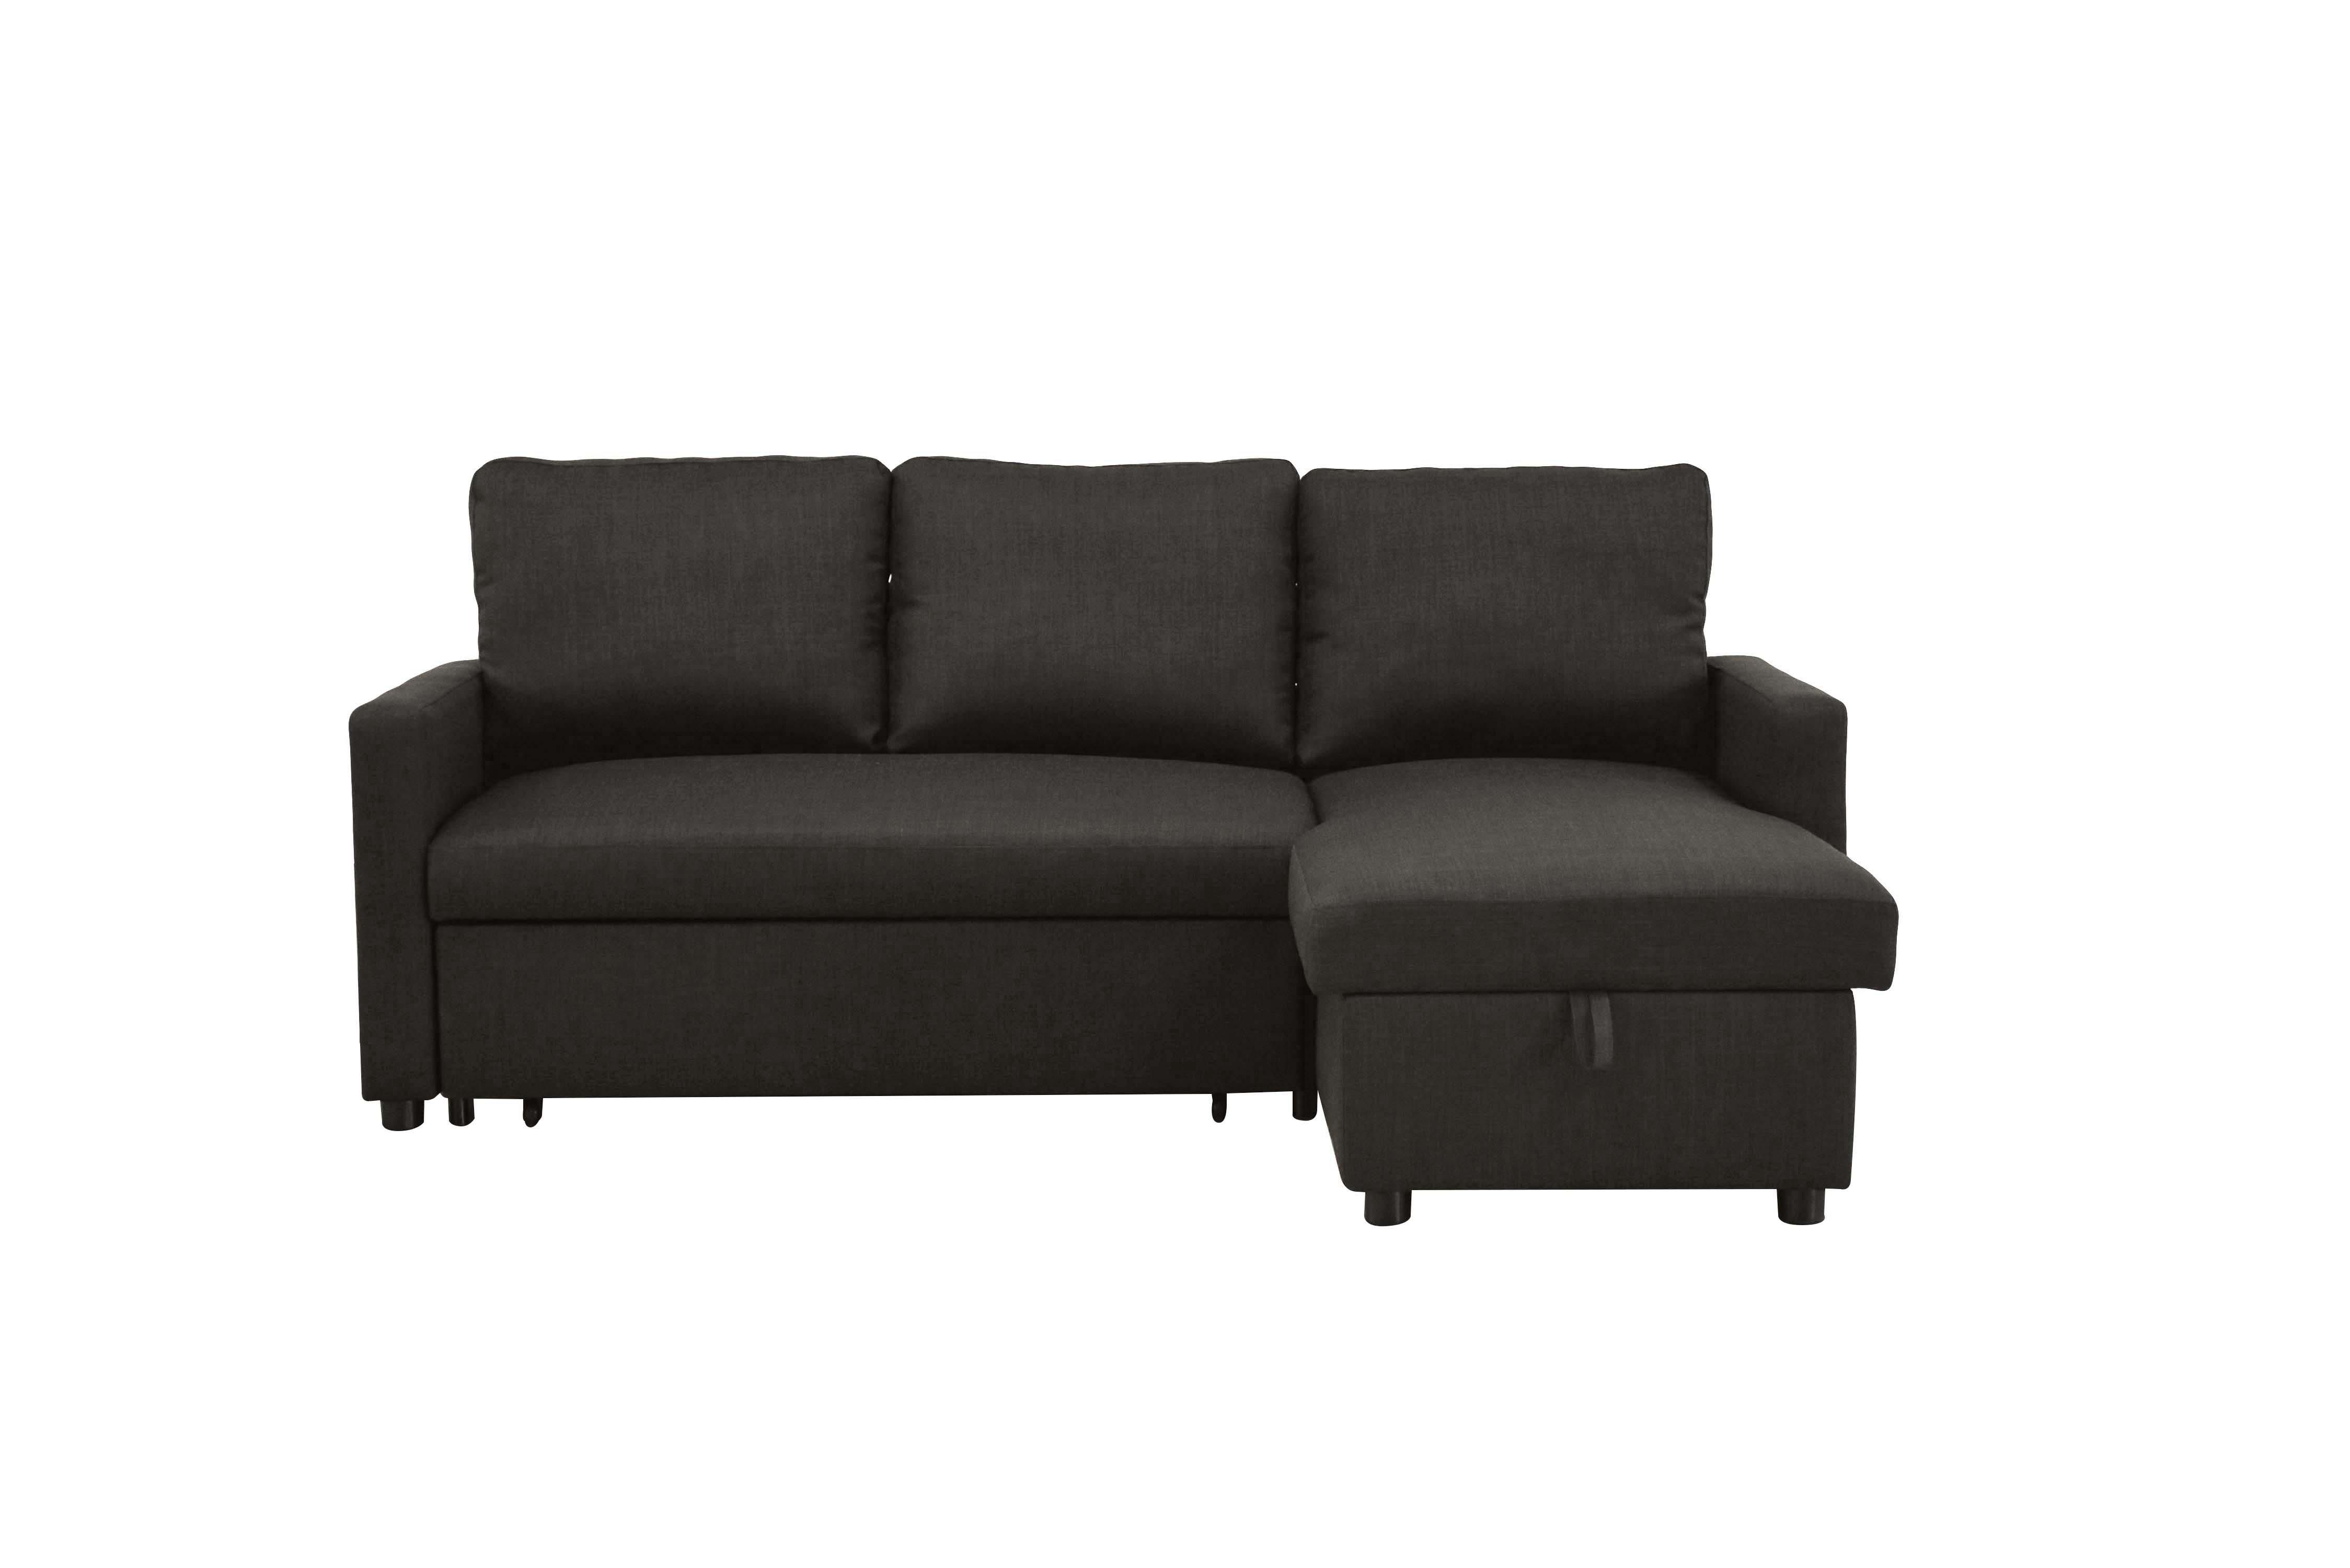 Hilton S Sectional Sofa With Sleeper And Storage Charcoal Linen Di 2020